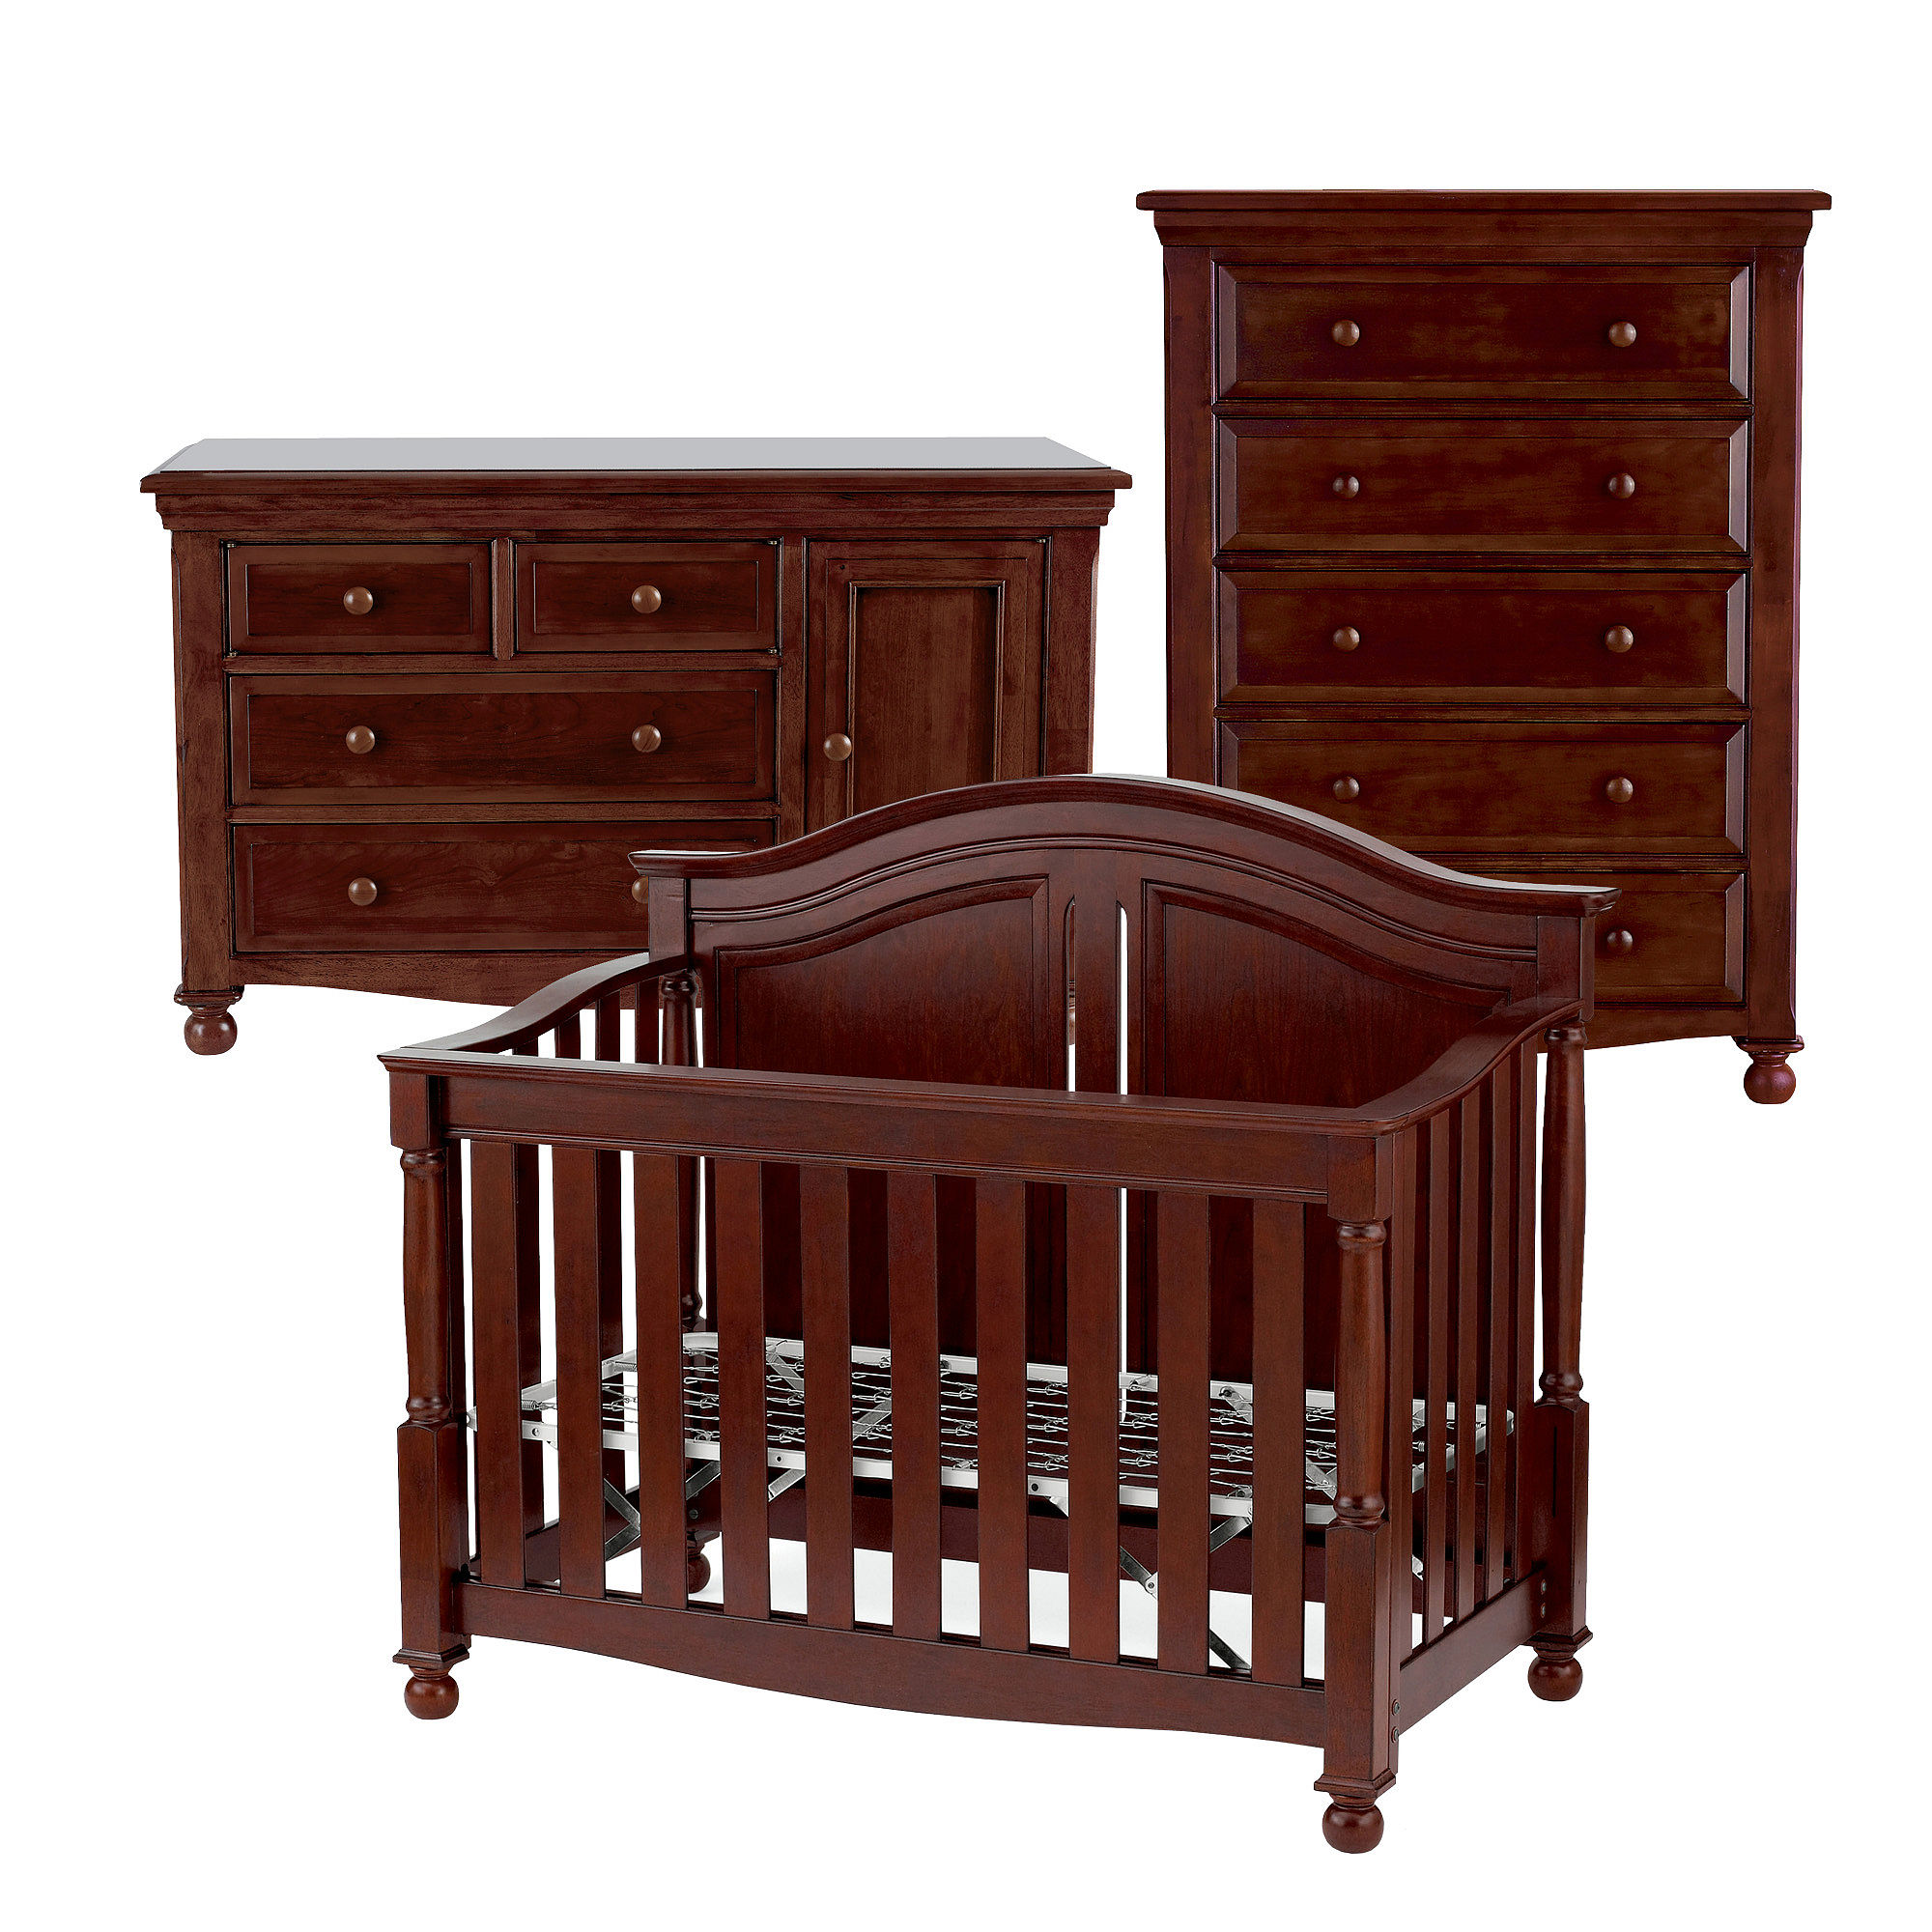 Jcpenneyfurniture: Jcpenney Furniture Review